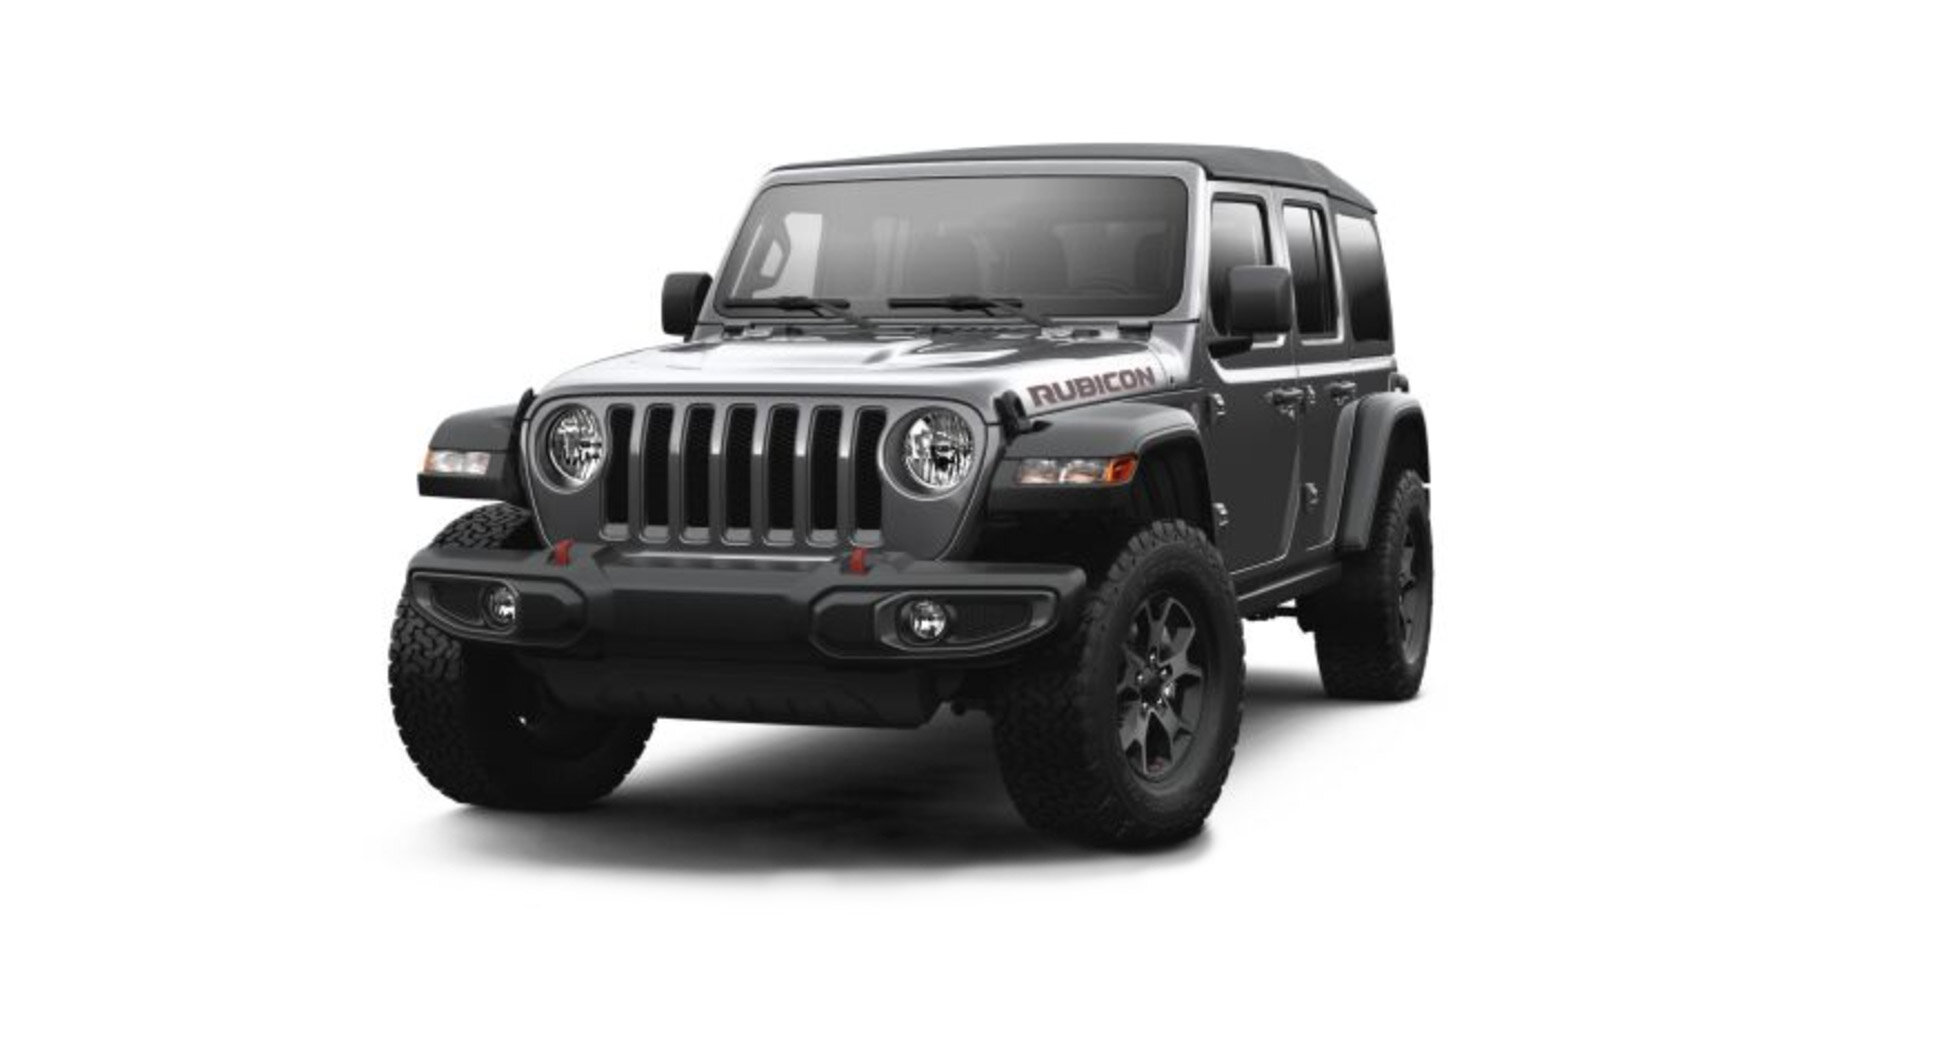 2021 Jeep Wrangler Rubicon Front View 2 - Image Courtesy of Jeep Chrysler